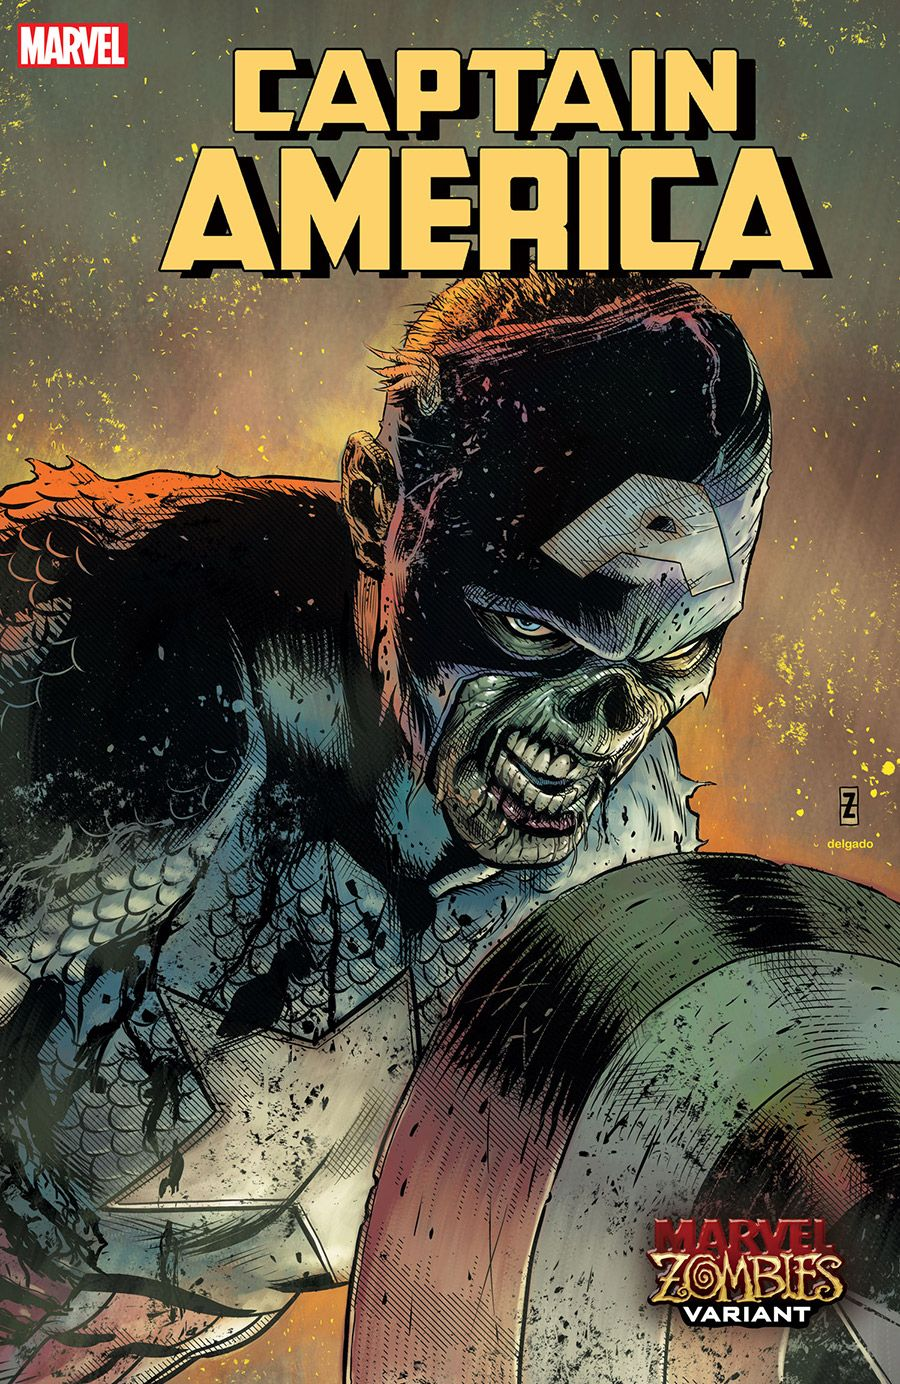 Captain america 21 marvel zombies variant by patch zircher